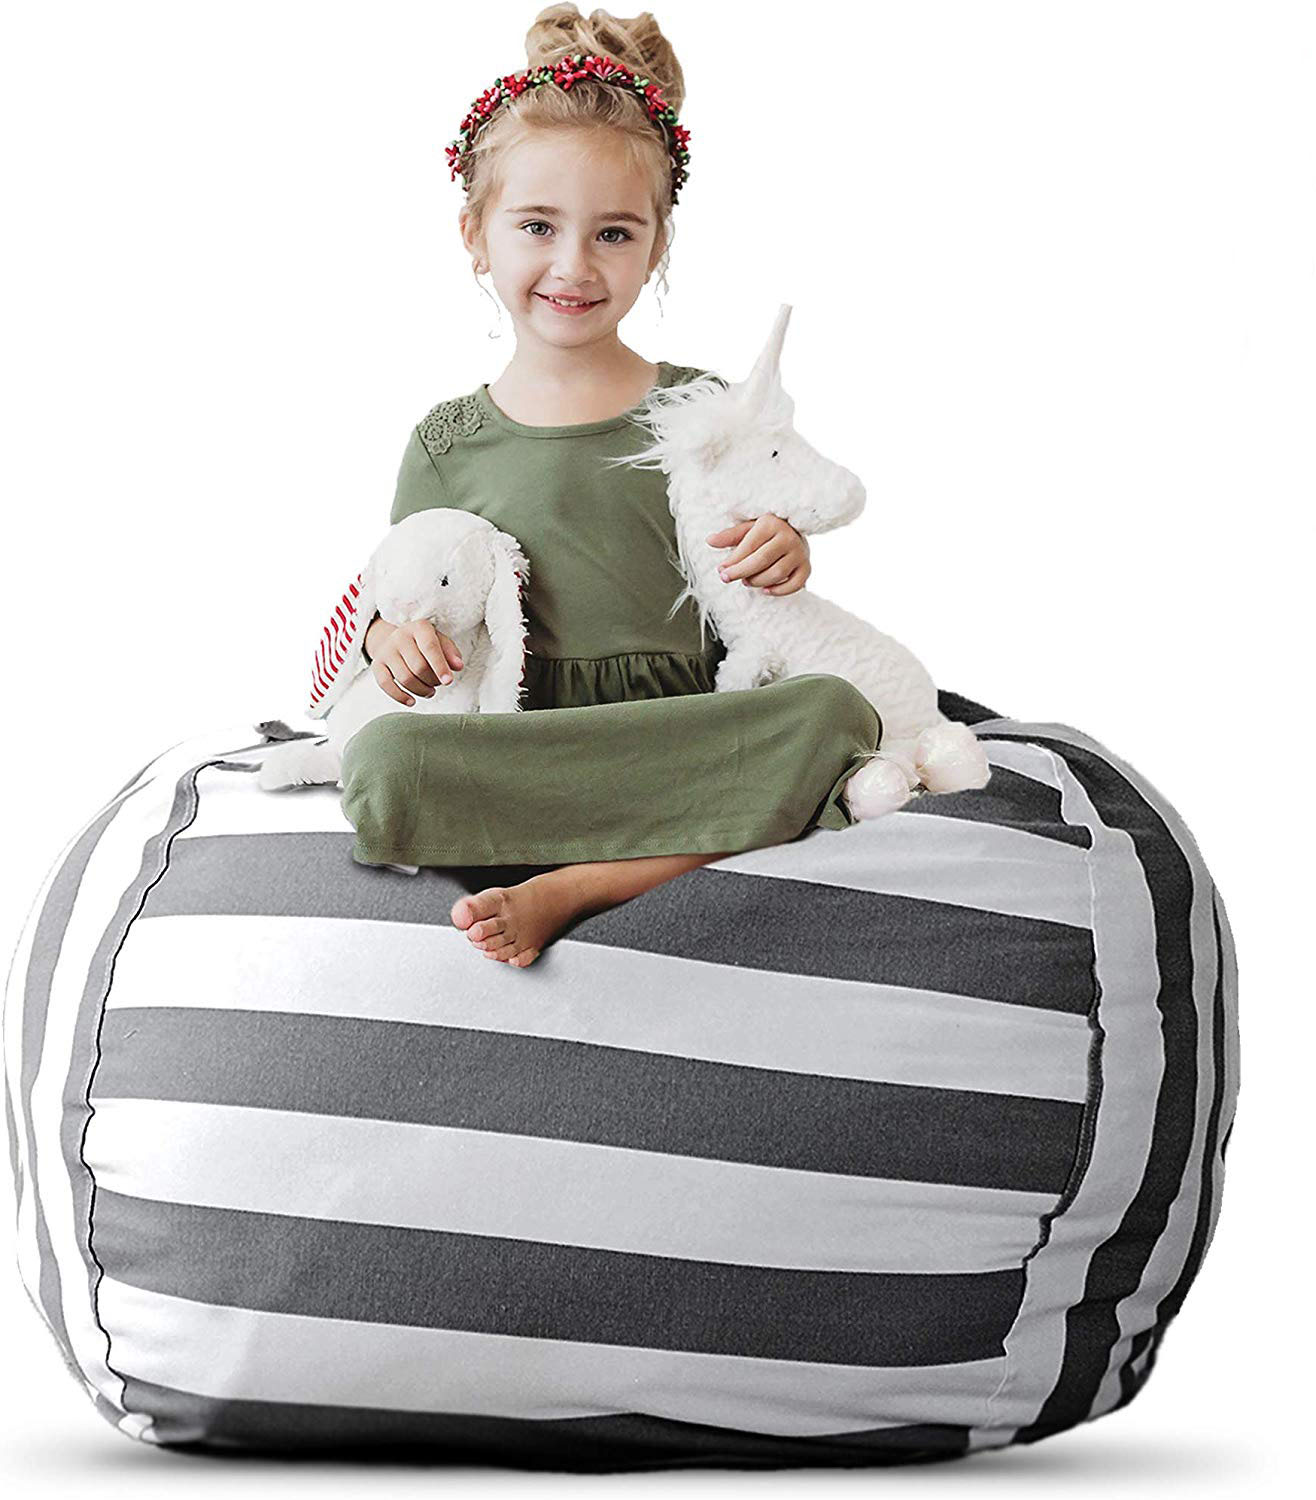 little girl on a bean bag chair with stuffed animals